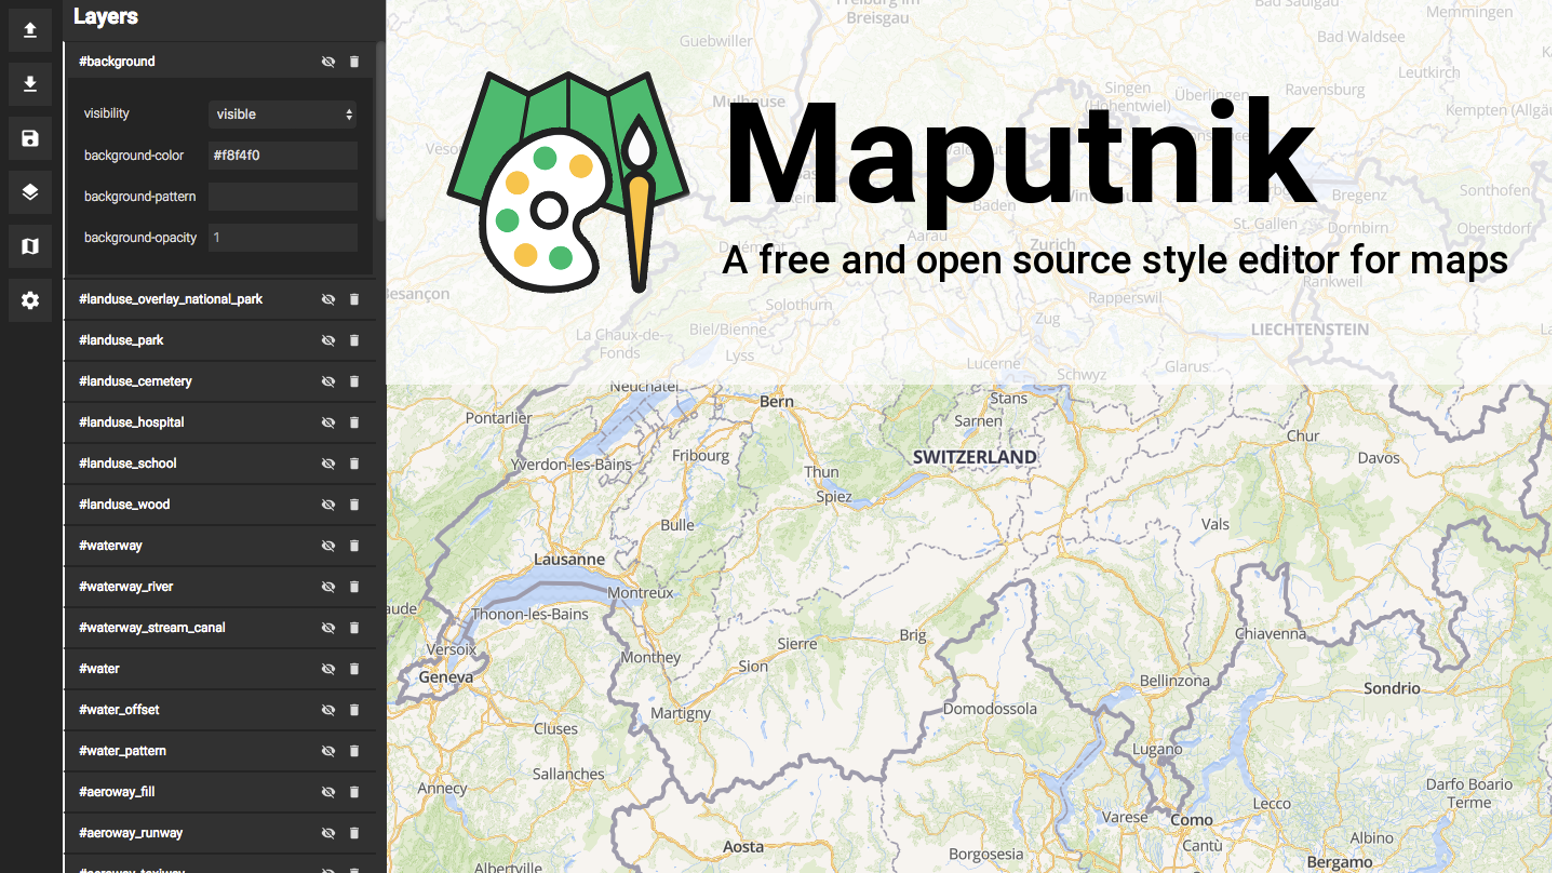 A free and open source visual editor for Mapbox GL so everyone can design their own beautiful map.